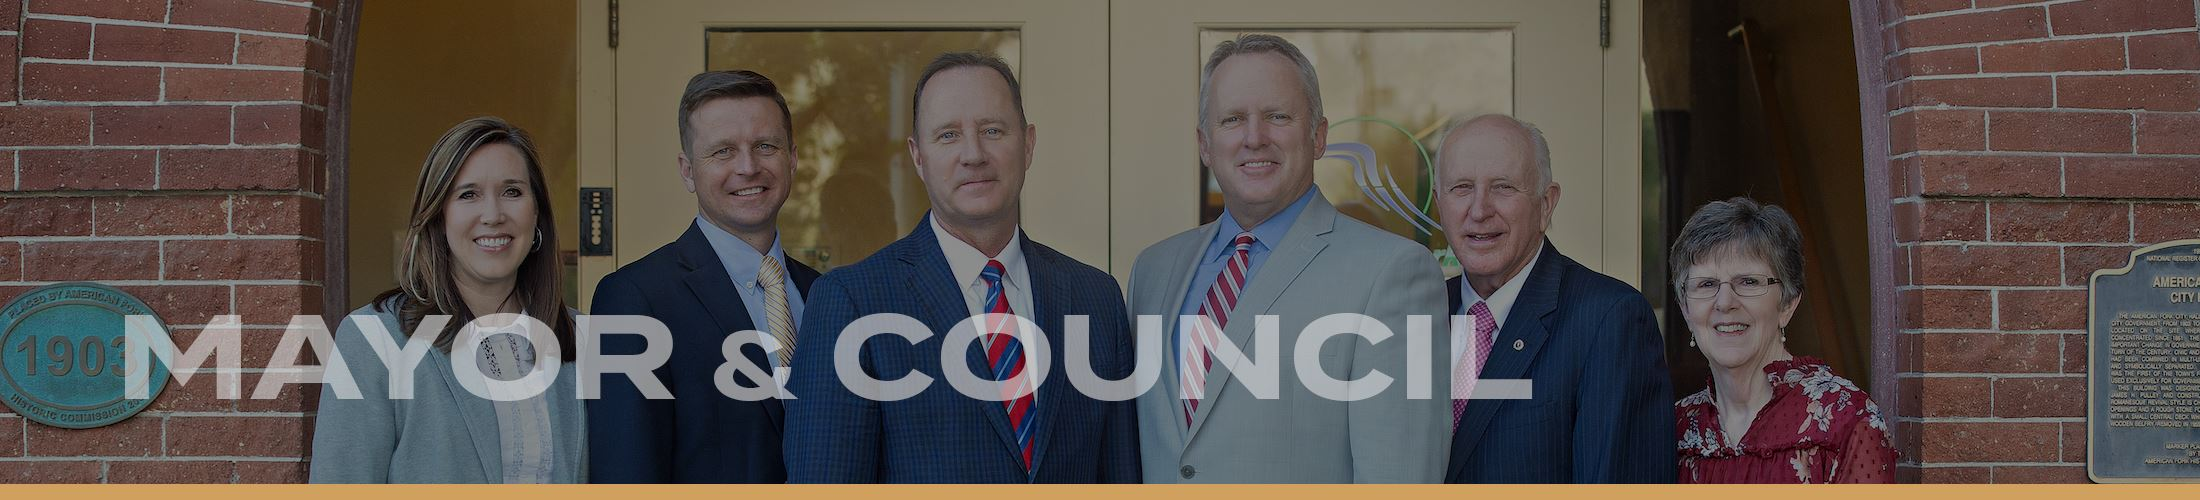 Website Banners 2020 - Mayor Council